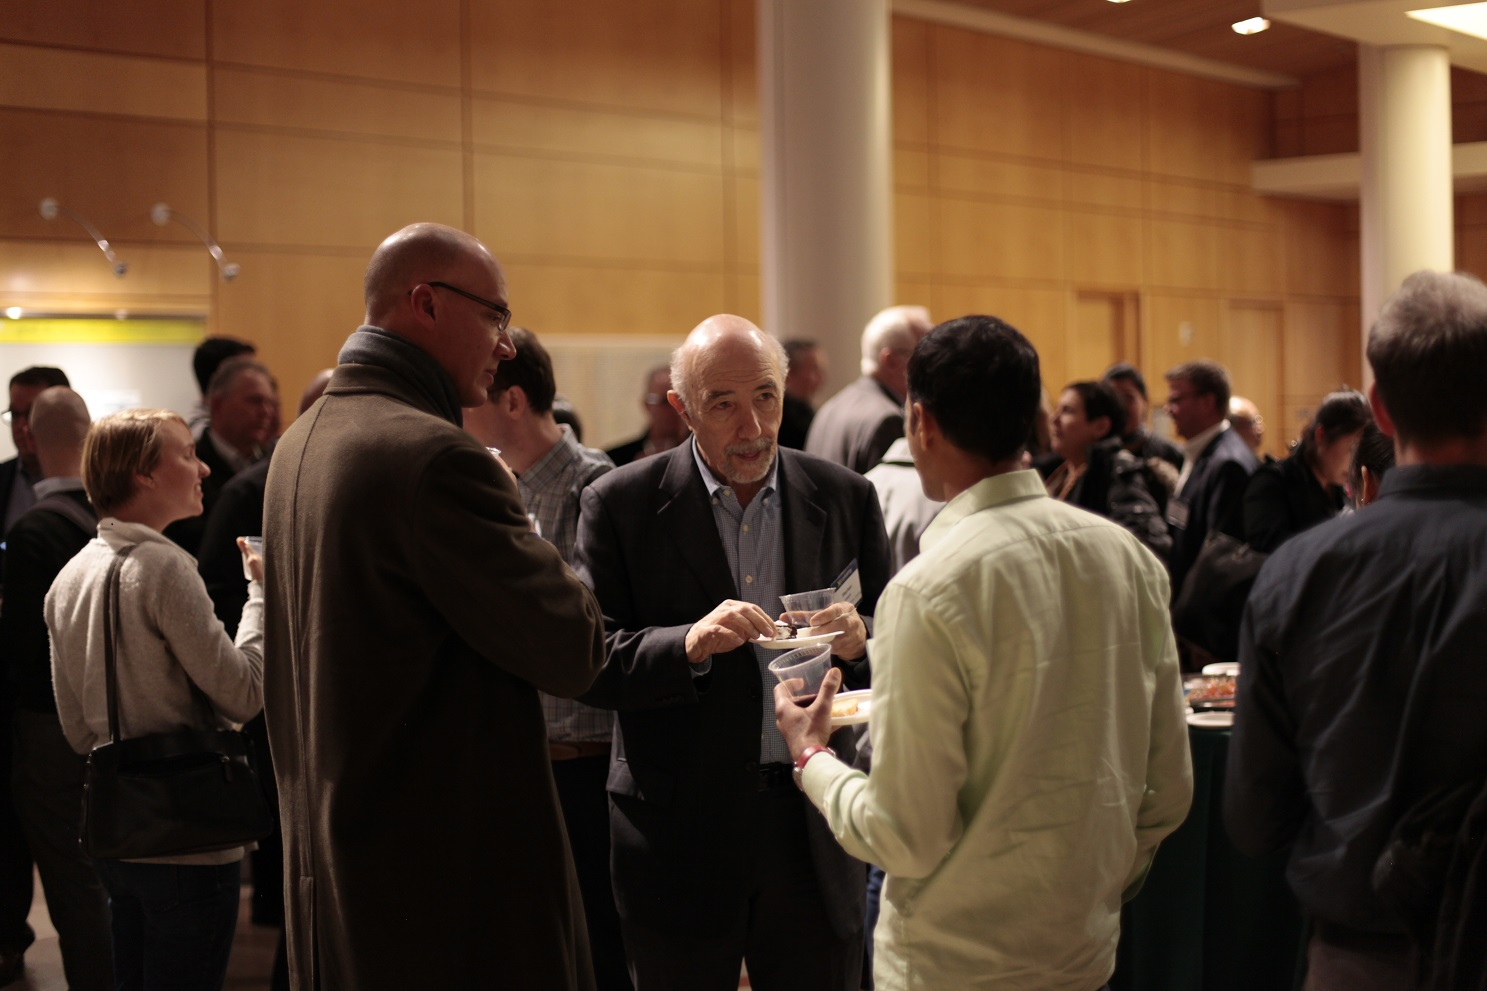 Networking at The Next Generation event